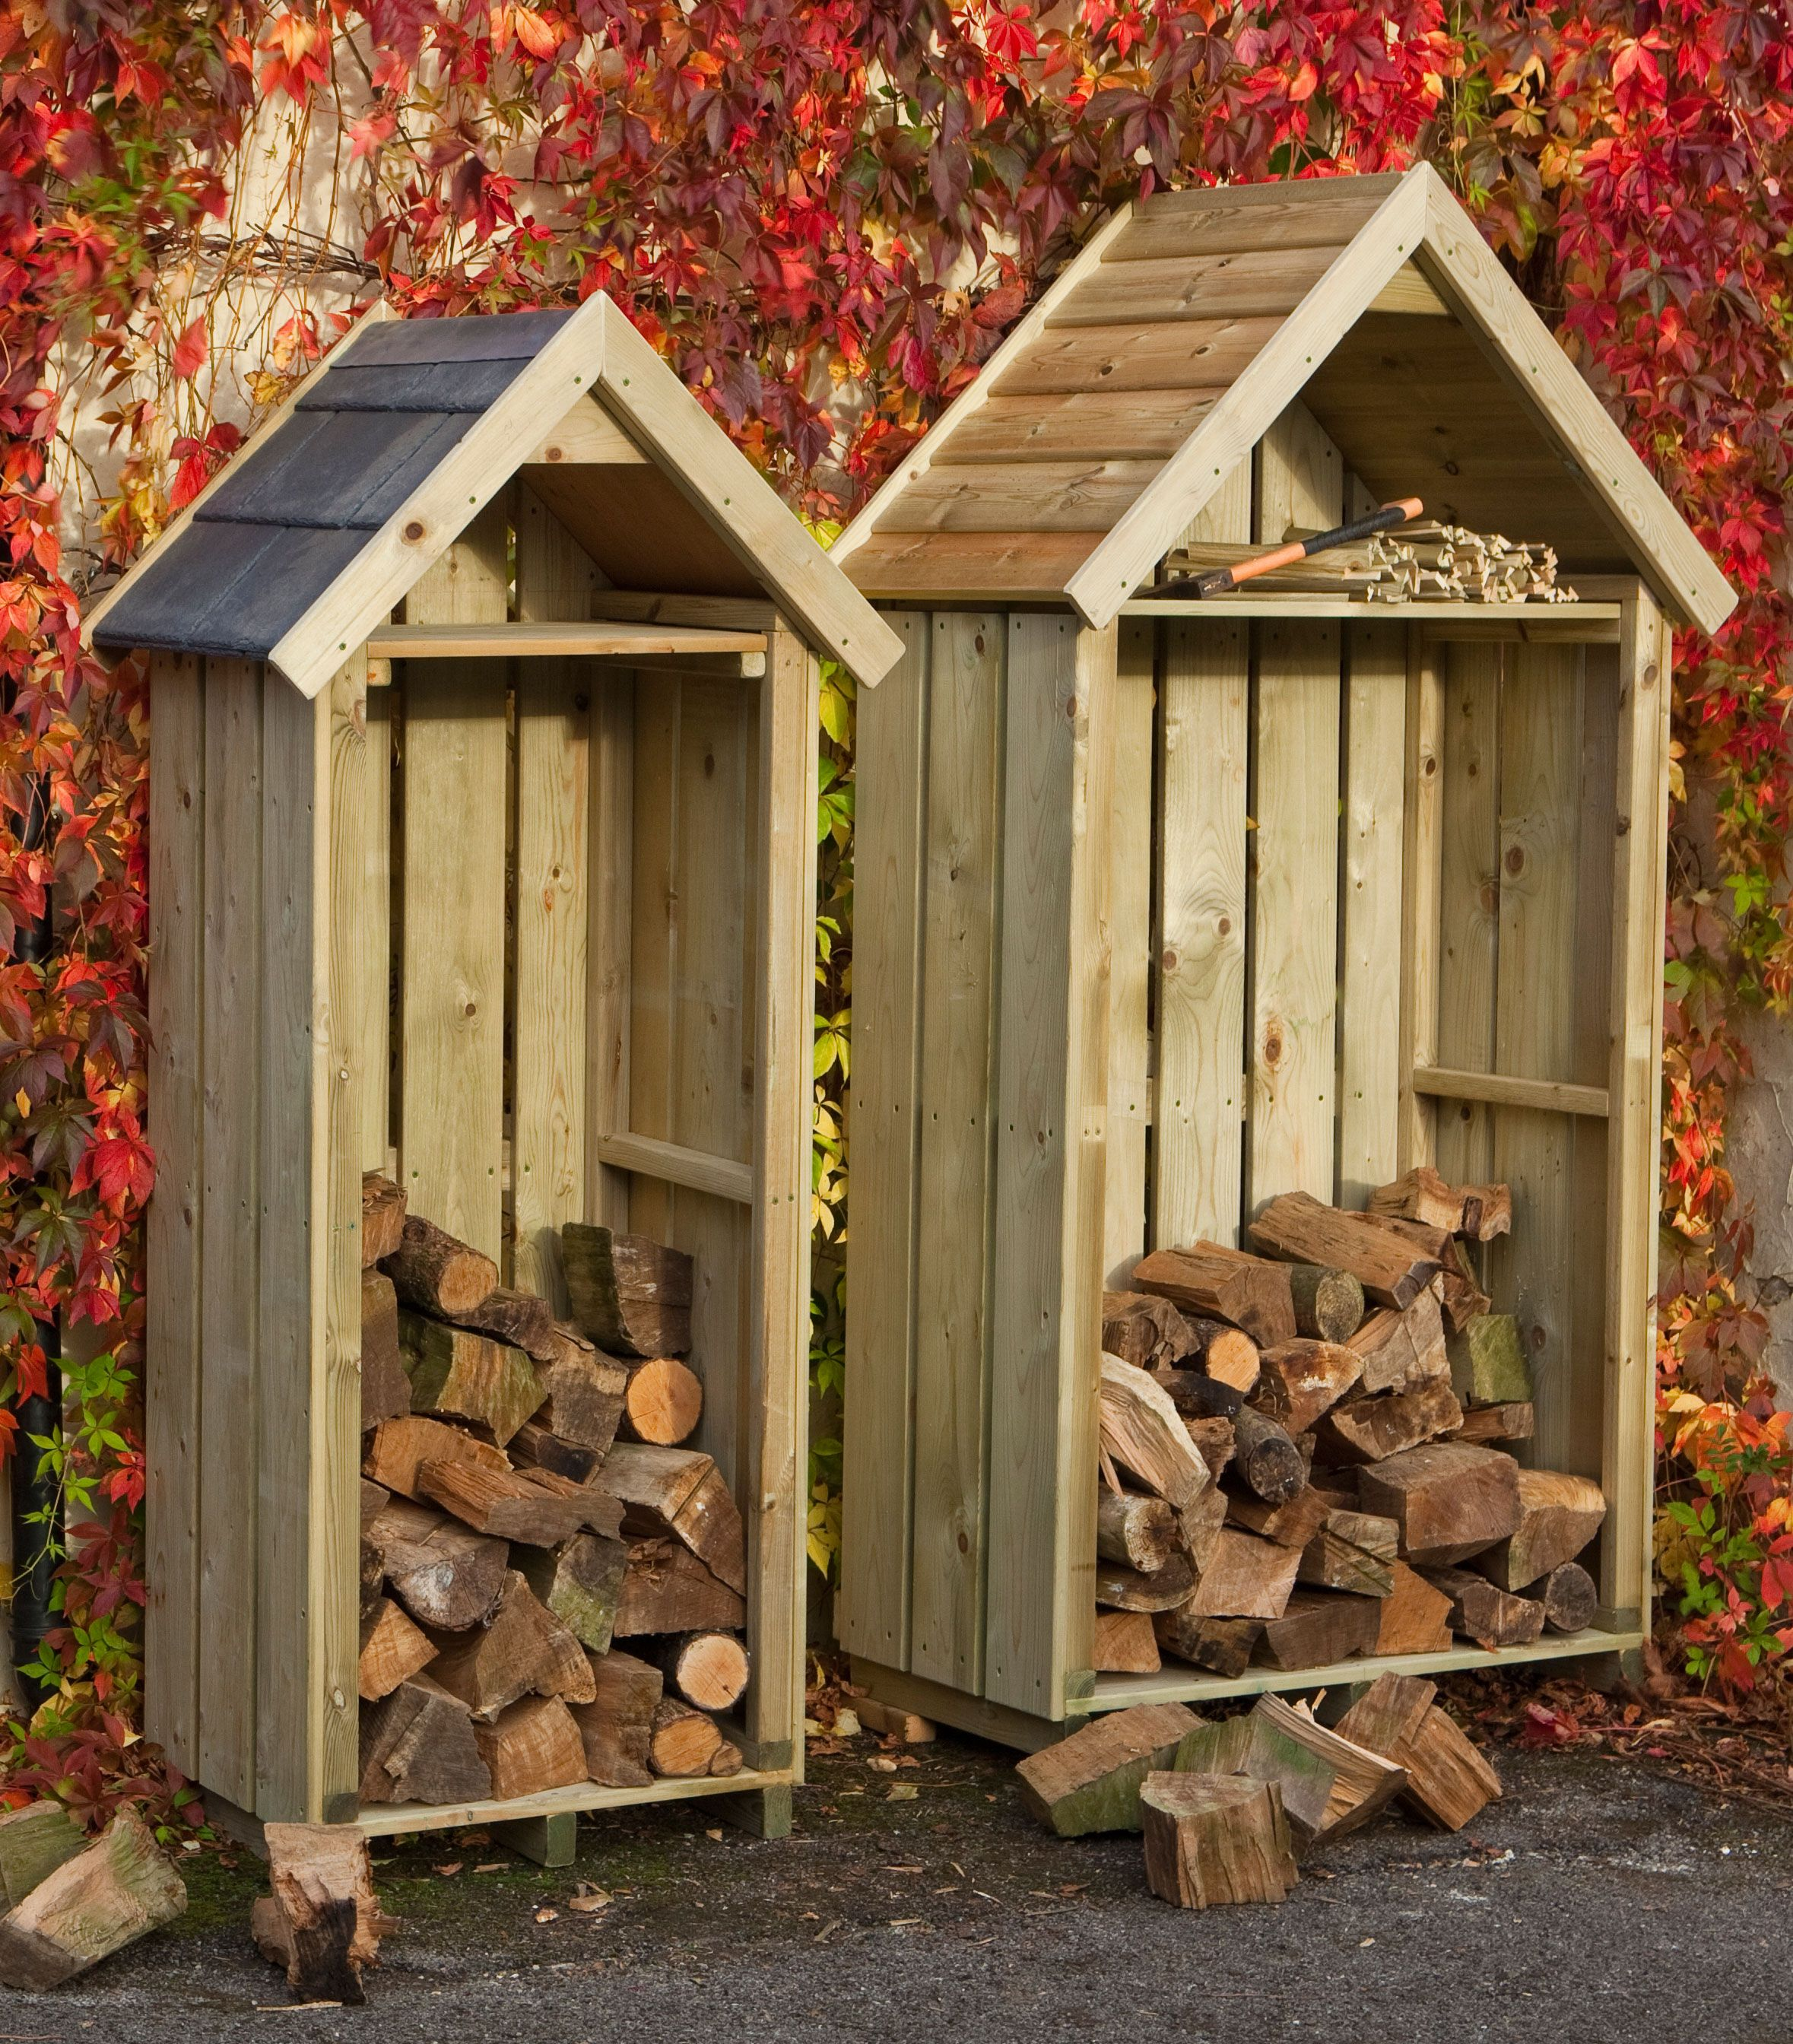 c img all garden wooden day sheds sizes small pent next popular htm buildings x shed cen shire sticker wood